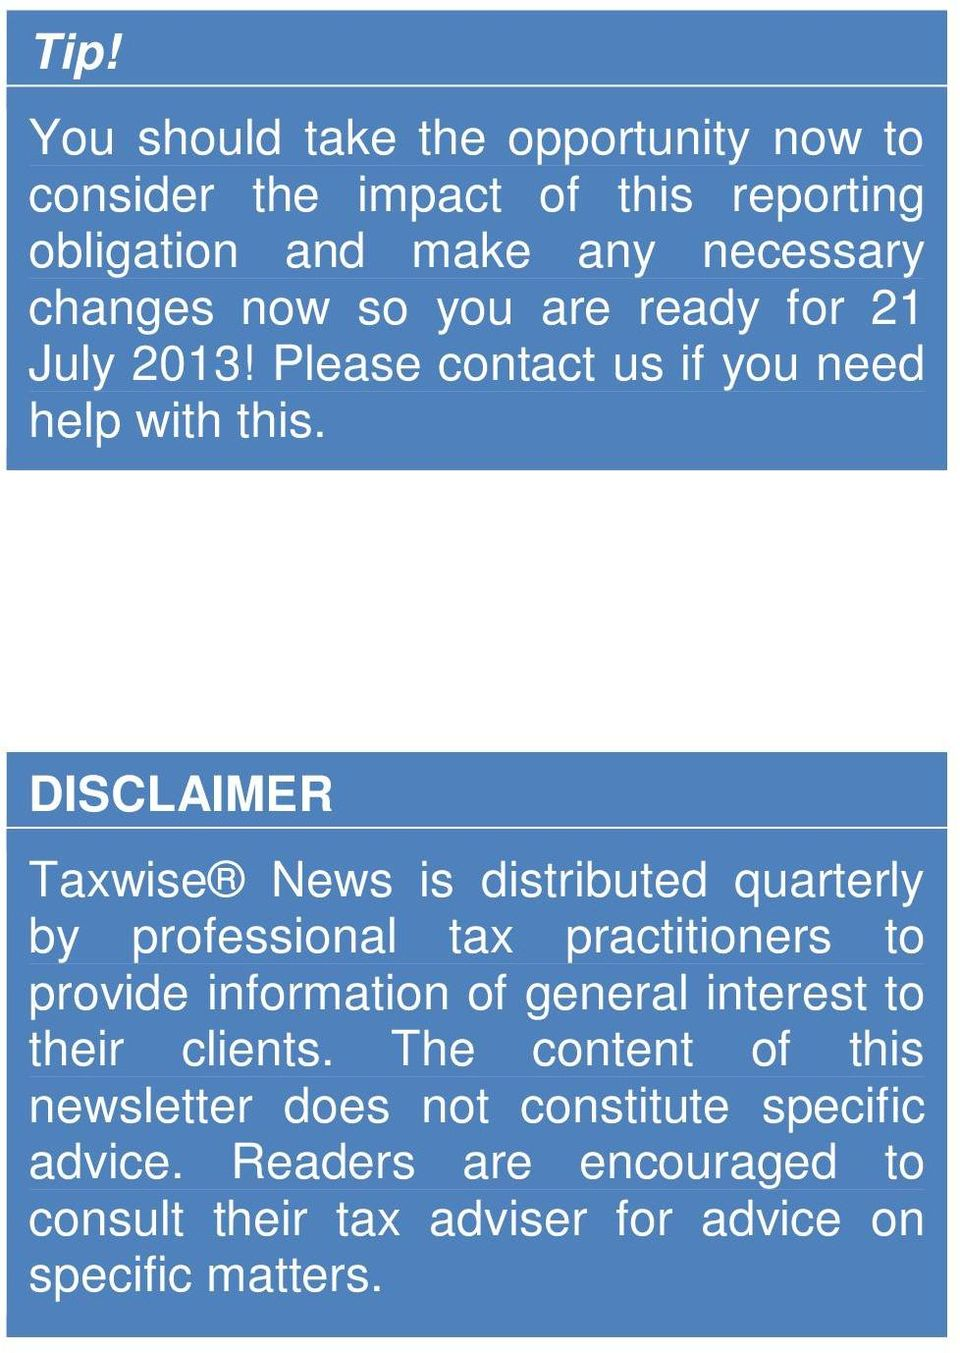 DISCLAIMER Taxwise News is distributed quarterly by professional tax practitioners to provide information of general interest